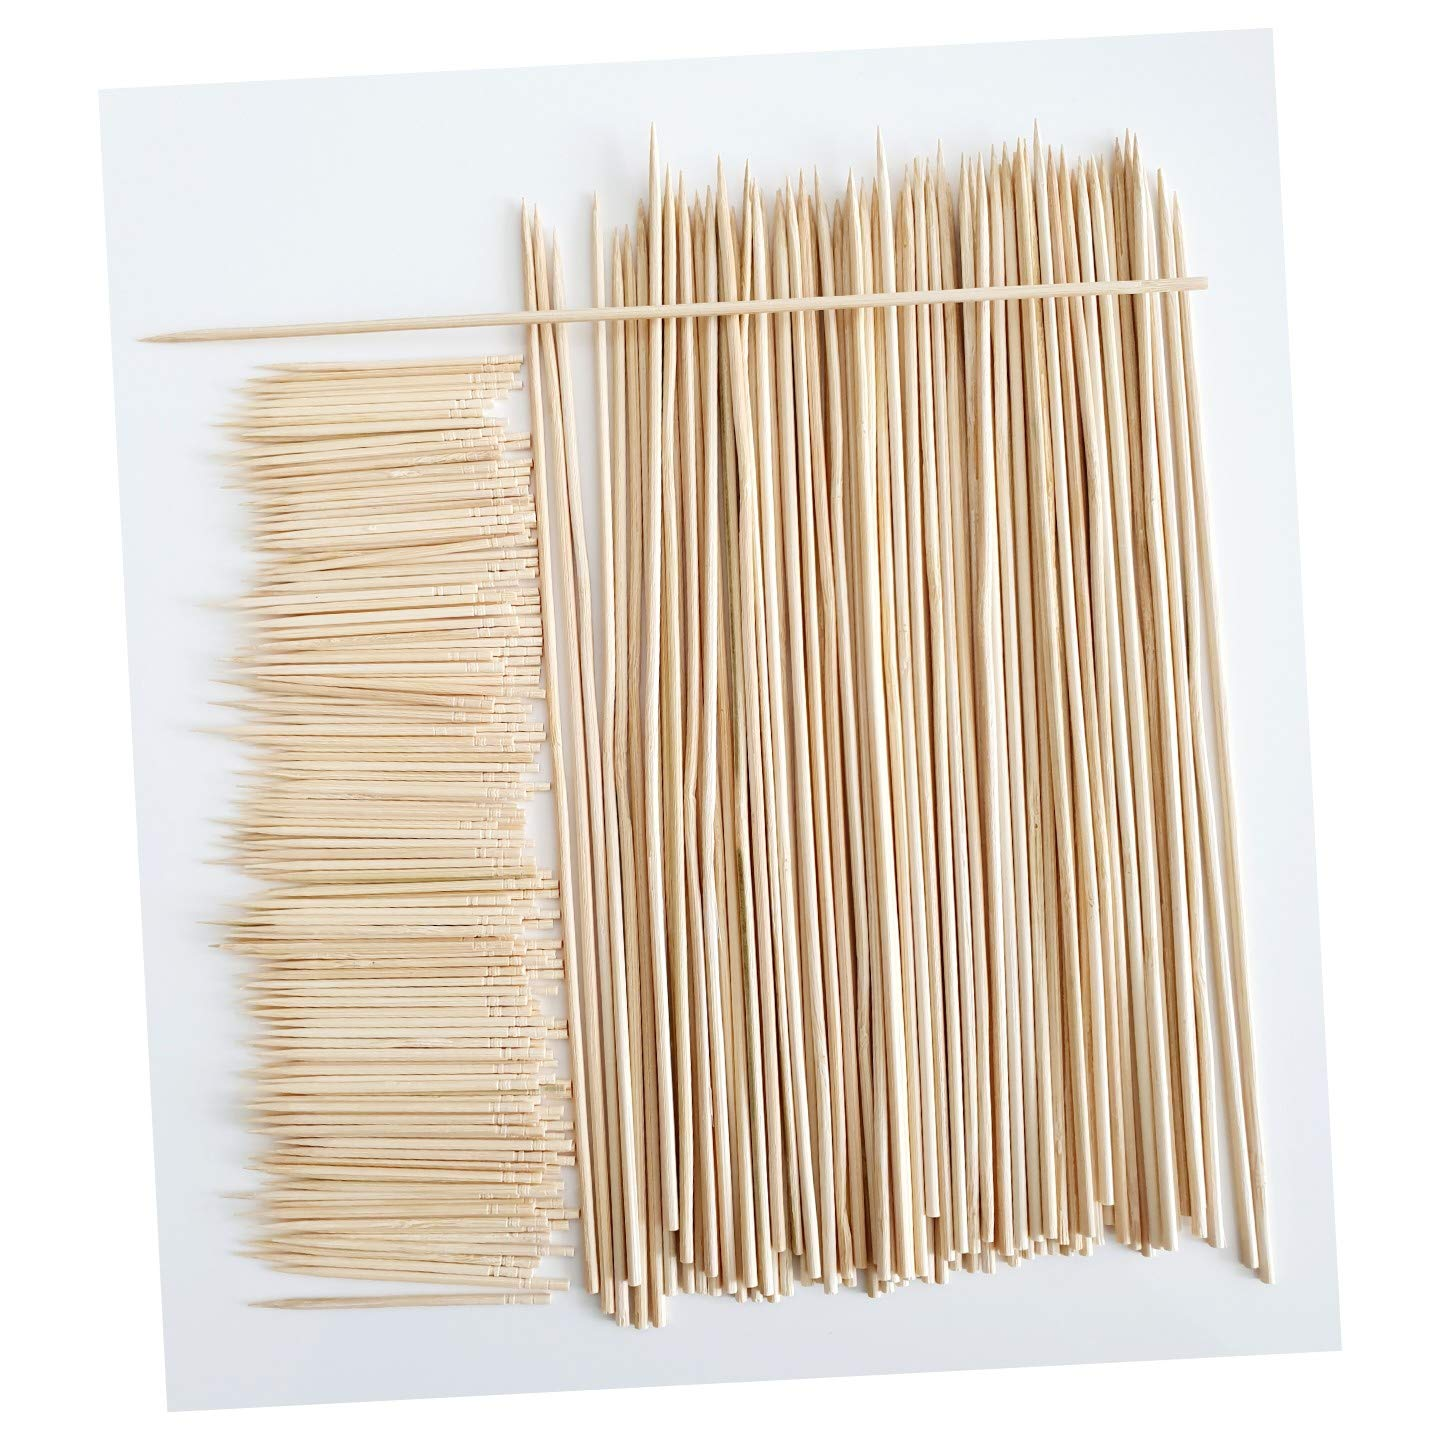 Suitable for Party and Kitchen Grilling Cocktail Kebab 200 Picks /& 88 Skewers TIIPLII Bamboo Cocktail Sticks /& Skewers 288 pcs for Appetizer and Fruit Chocolate Fountain No Splits or Debris